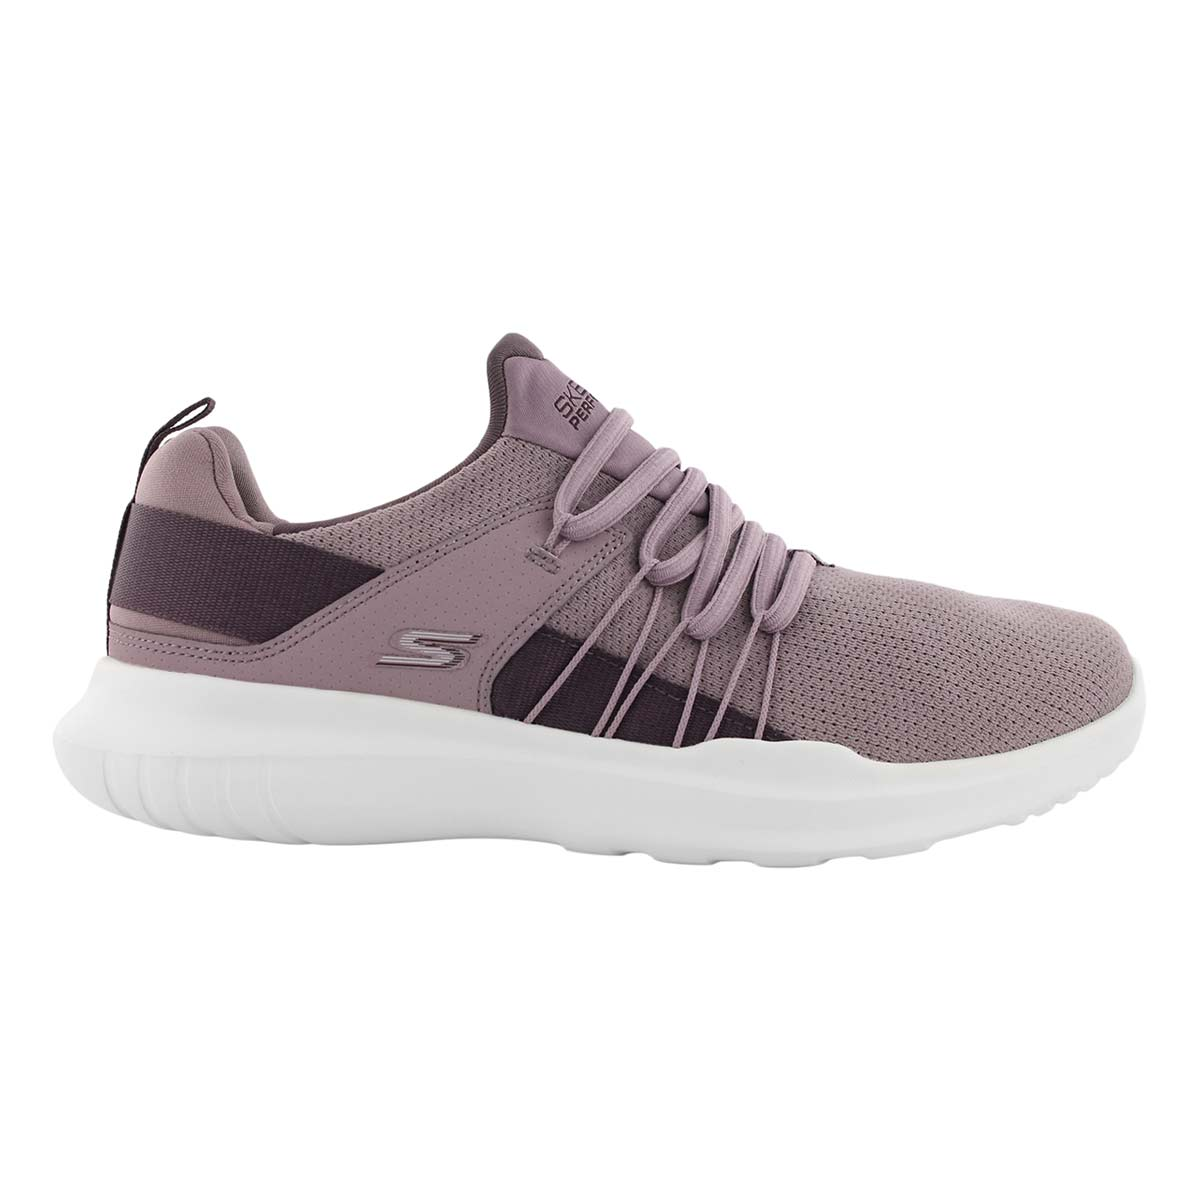 Lds GOrun Mojo Reactivate mauve slip on